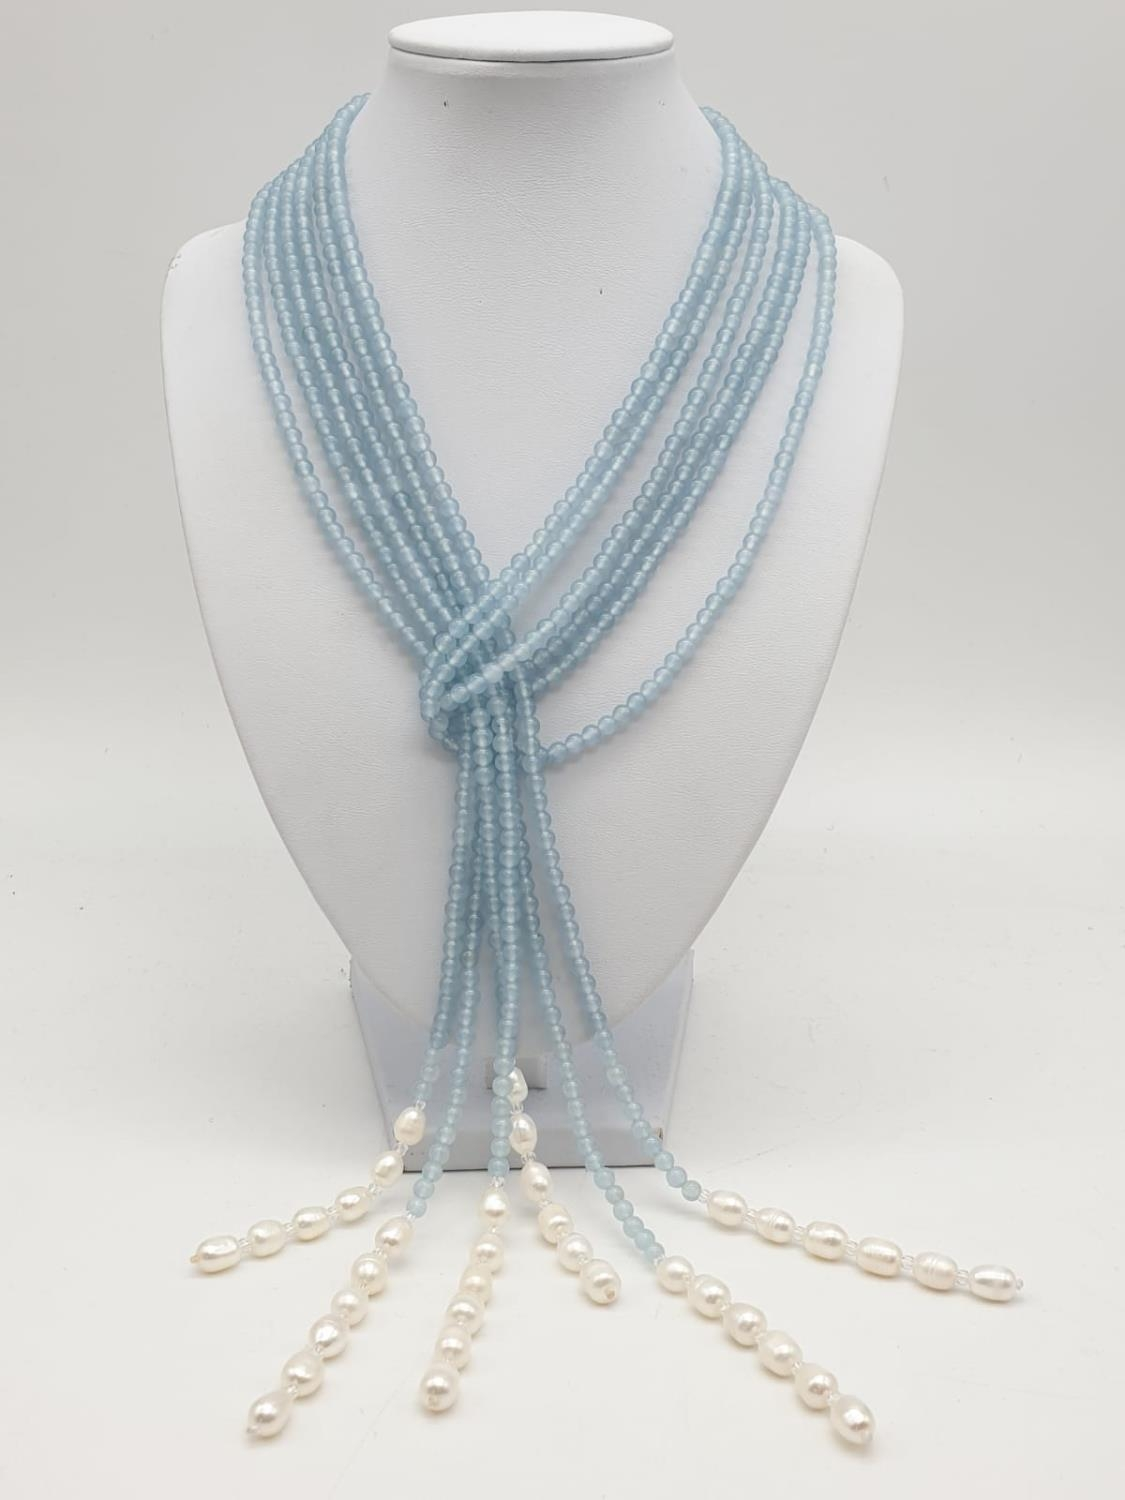 Three very long rows (128cm!) of aquamarine (colour enhanced) and natural pearls that can form a